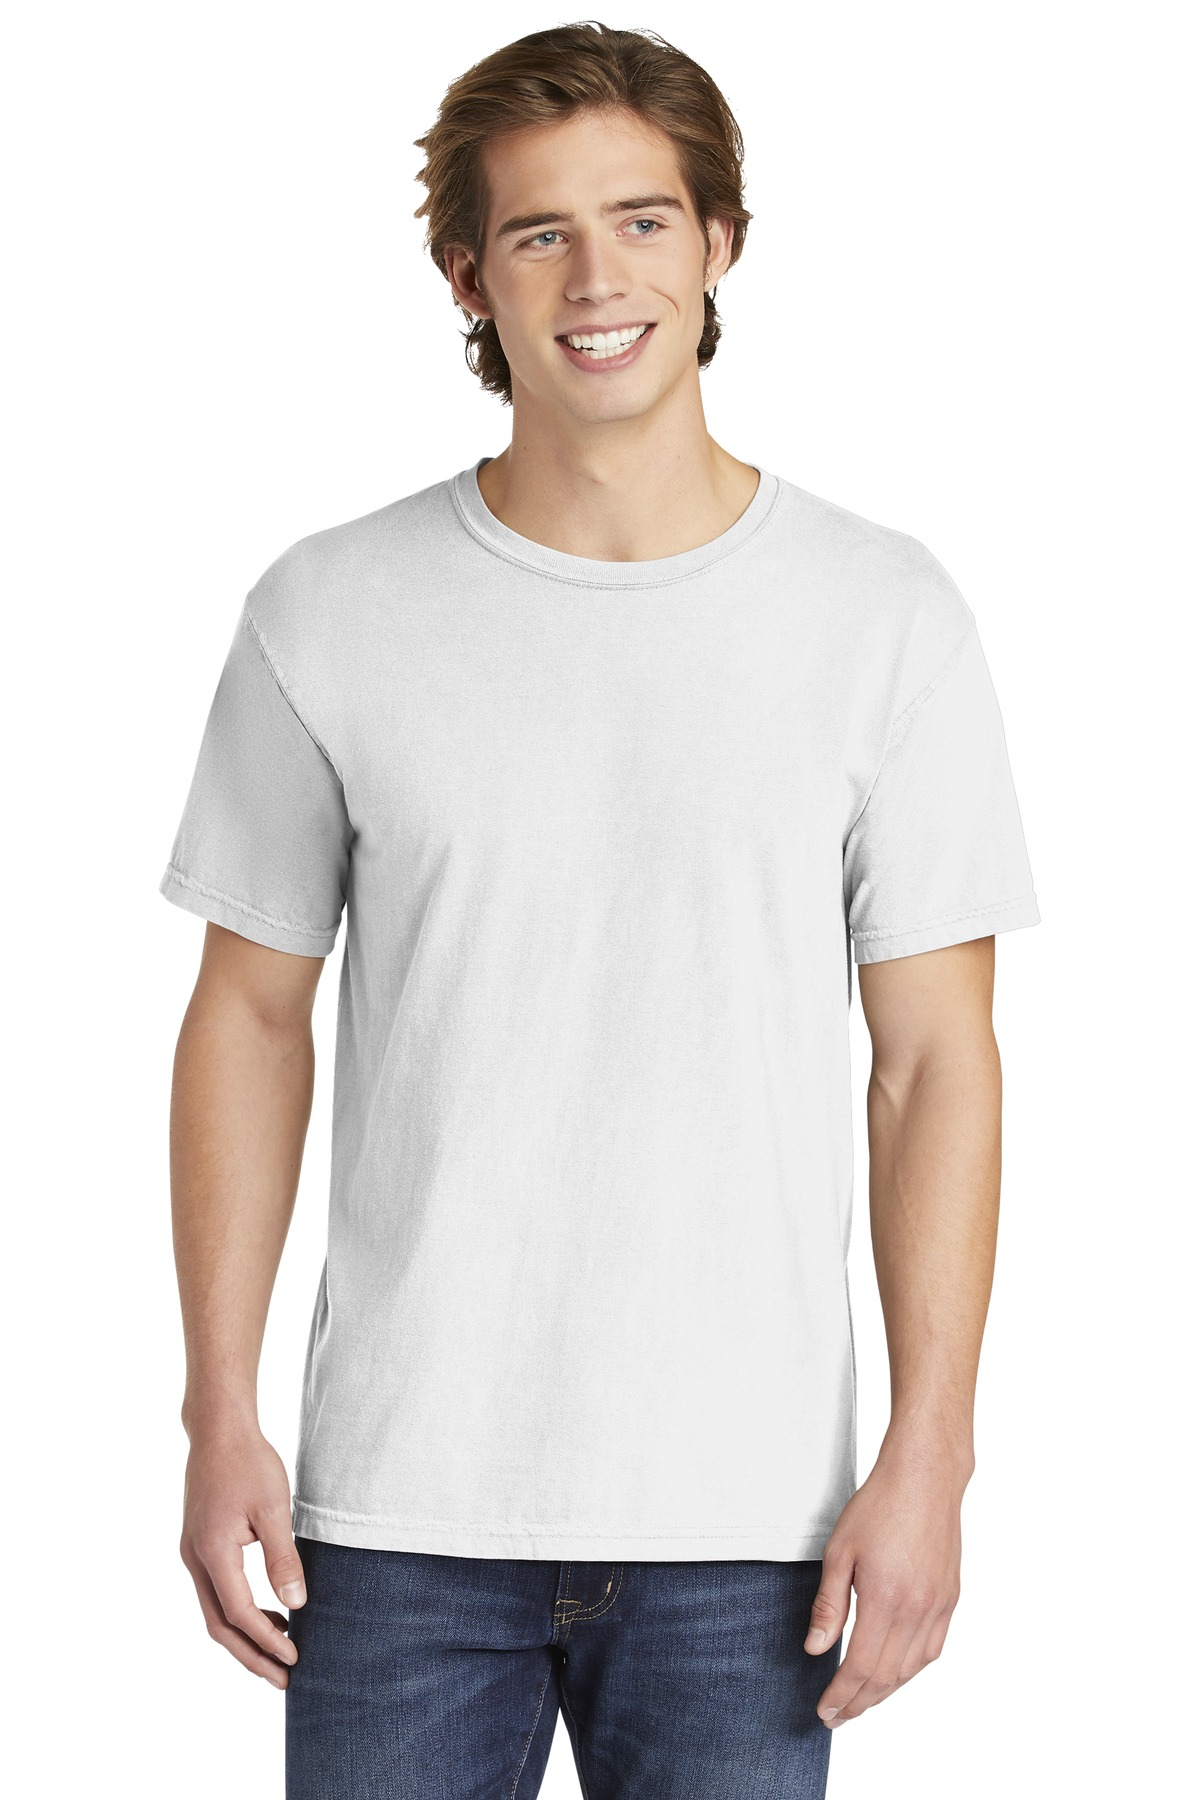 COMFORT COLORS  ®  Heavyweight Ring Spun Tee. 1717 - White